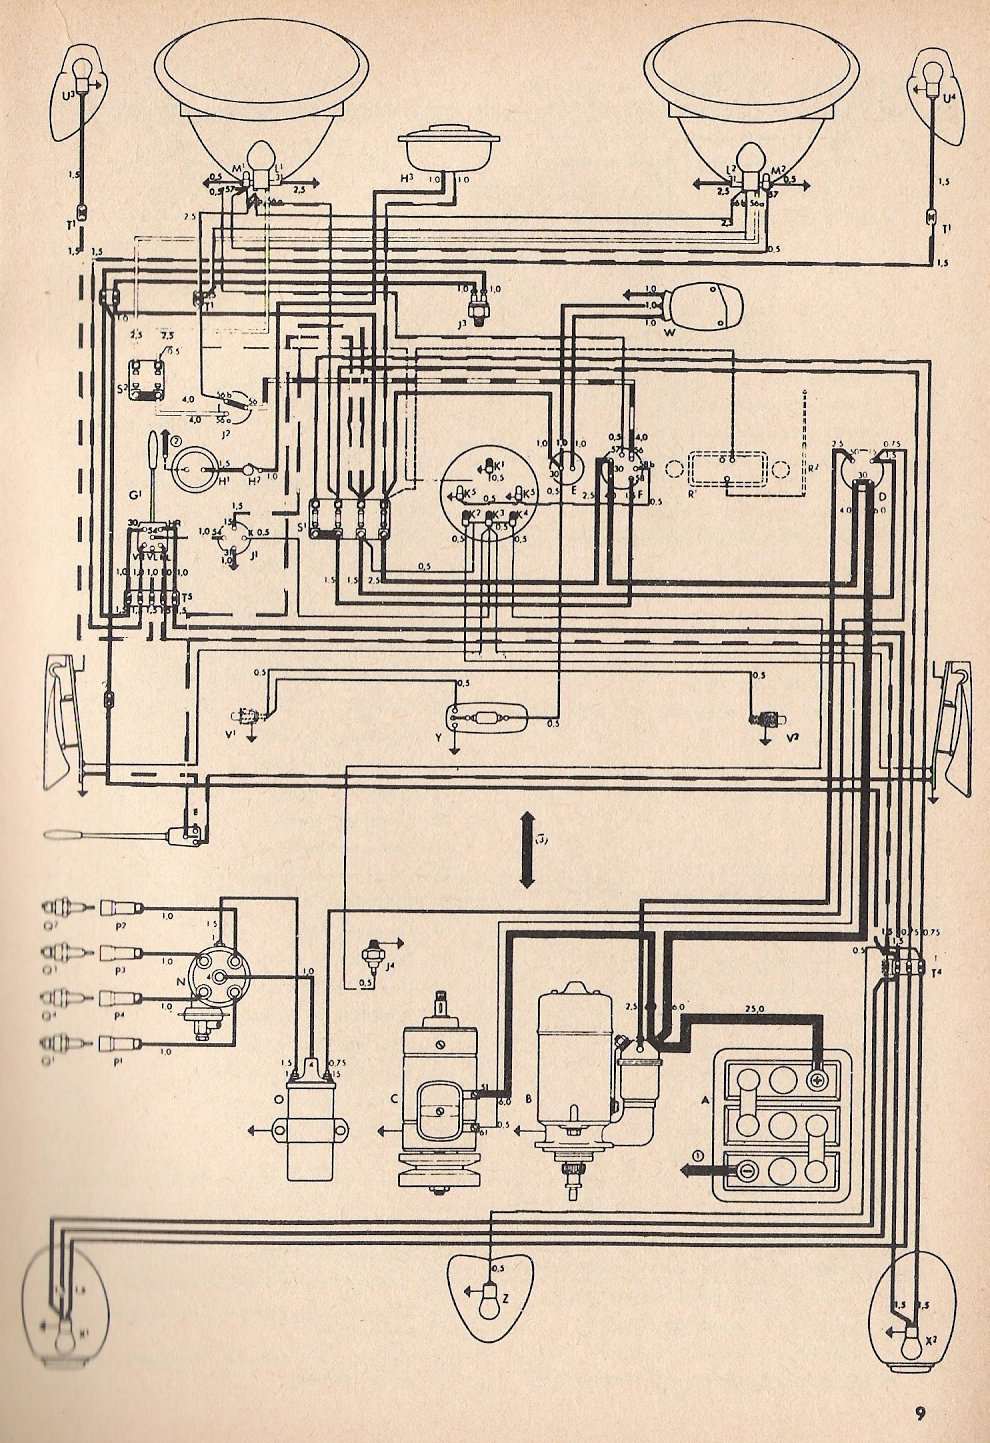 Thesamba :: Type 1 Wiring Diagrams - 1973 Vw Beetle Wiring Diagram